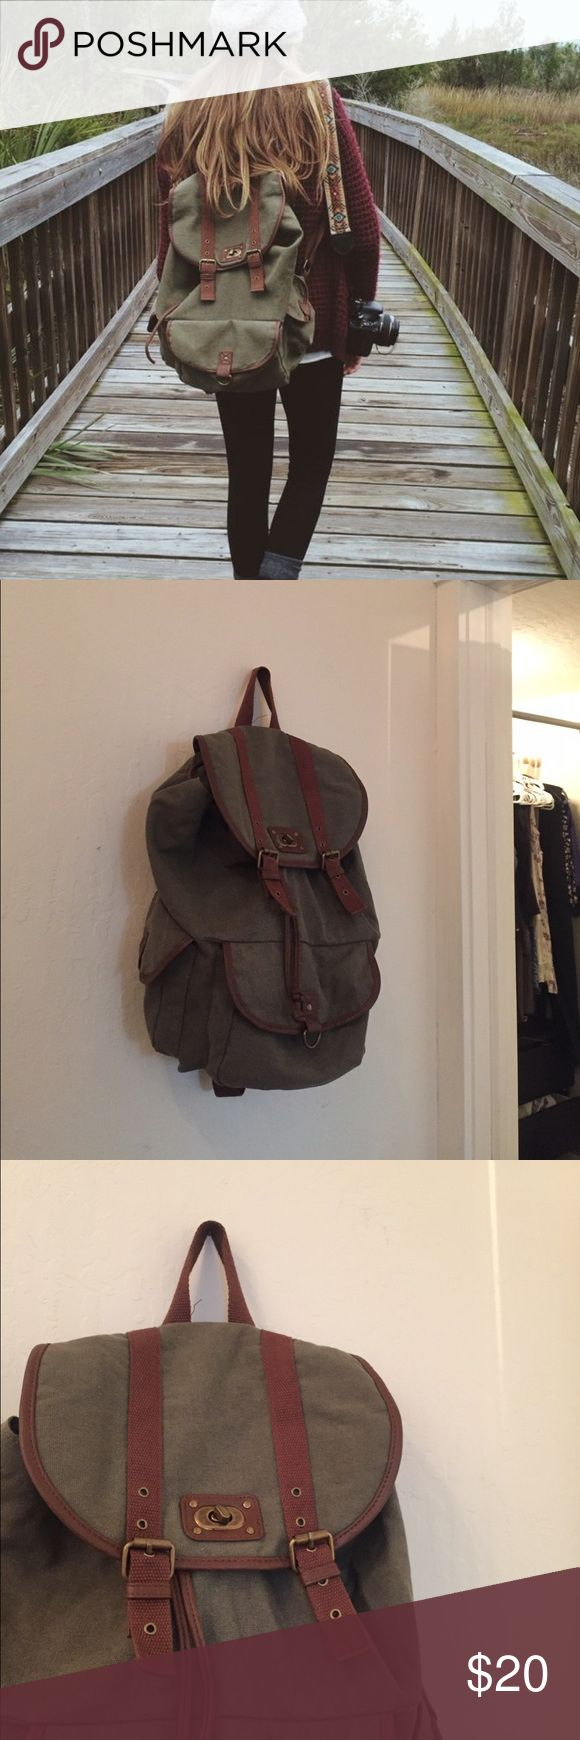 Green Backpack Green adventure backpack! Only worn once❤ This is target! Exact same backpack as the photo Brandy Melville Bags Backpacks